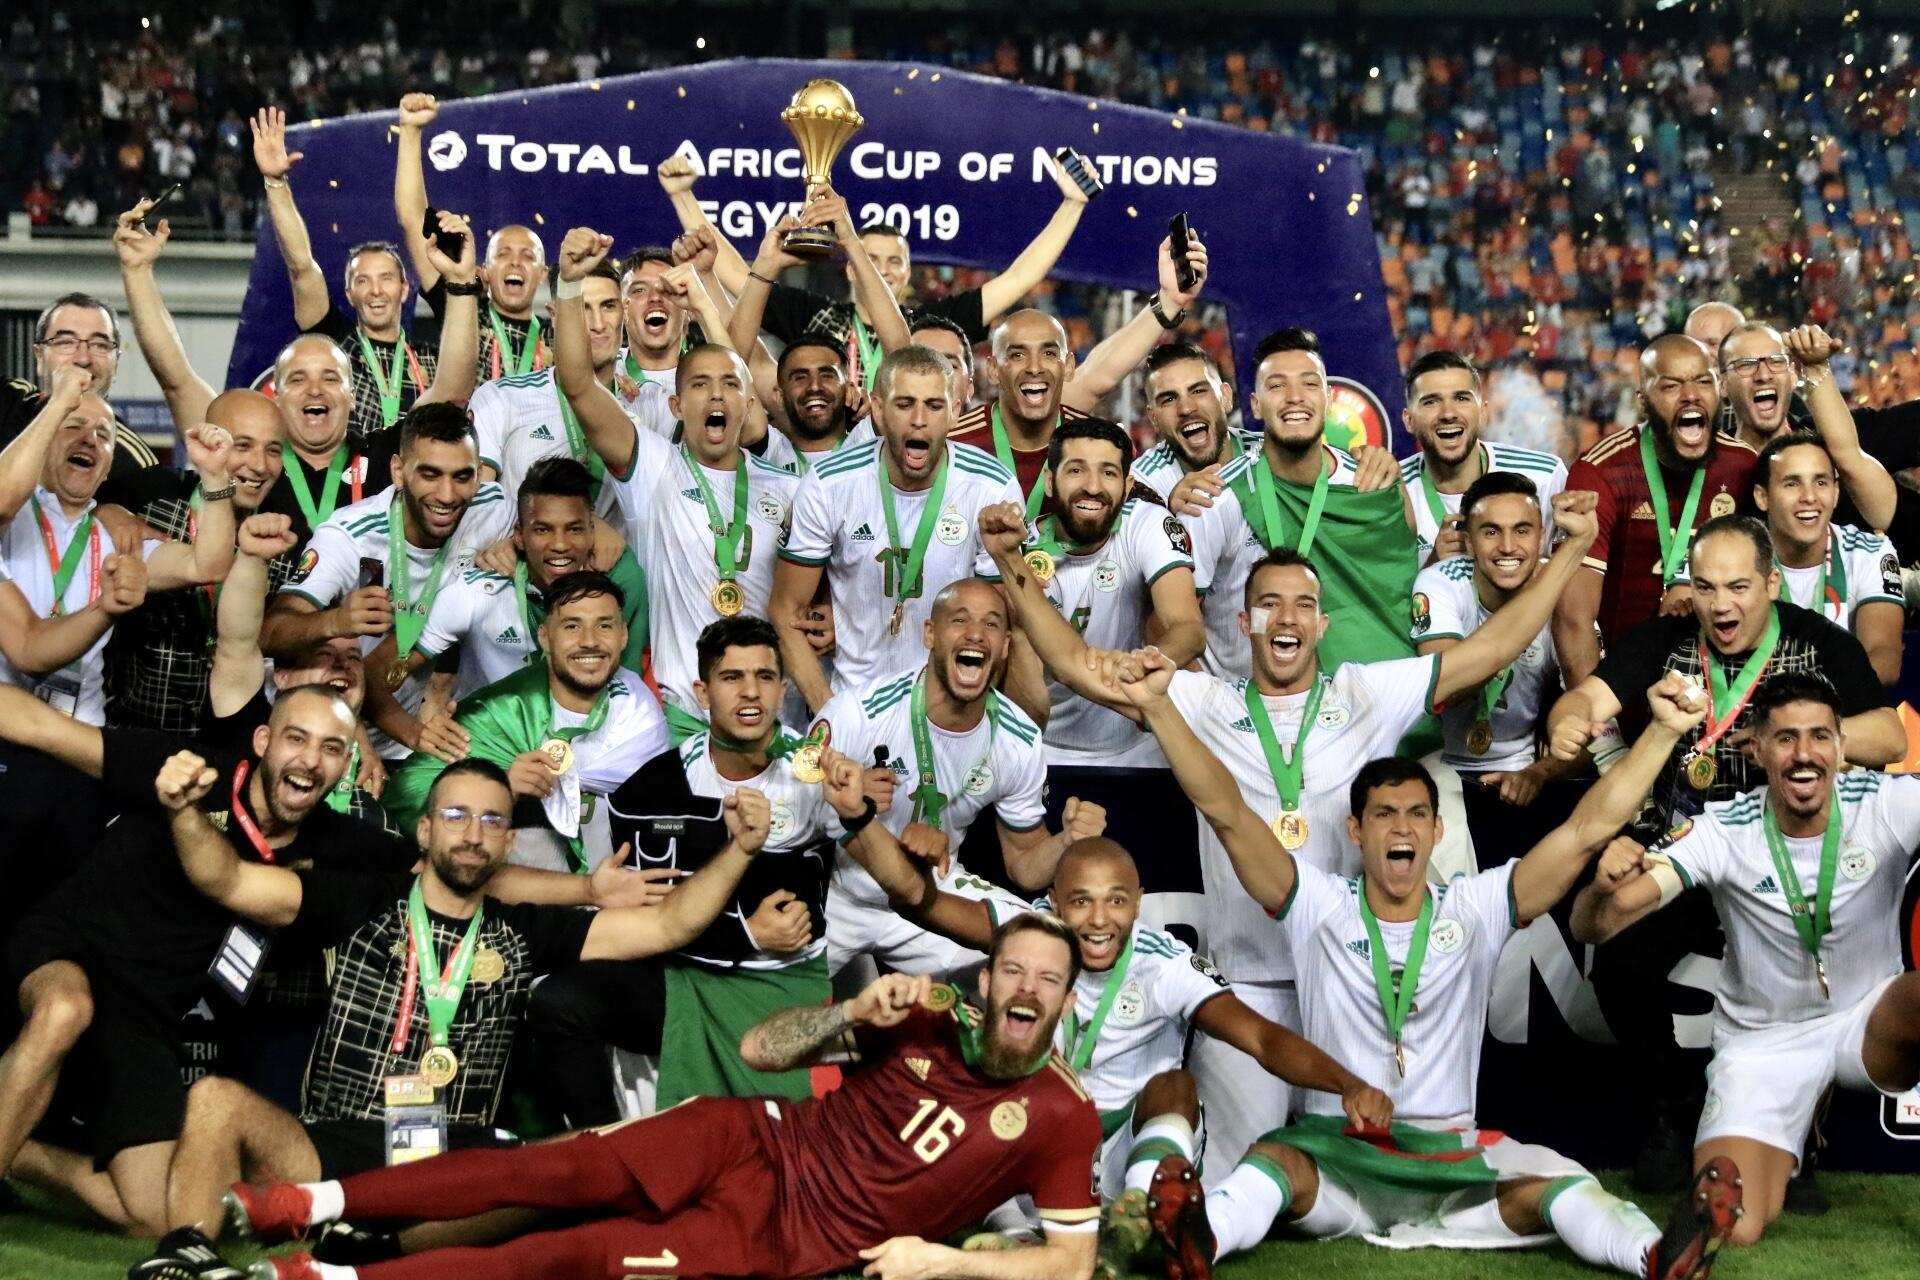 Algeria won their second Africa Cup of Nations following a 1-0 defeat of Senegal.